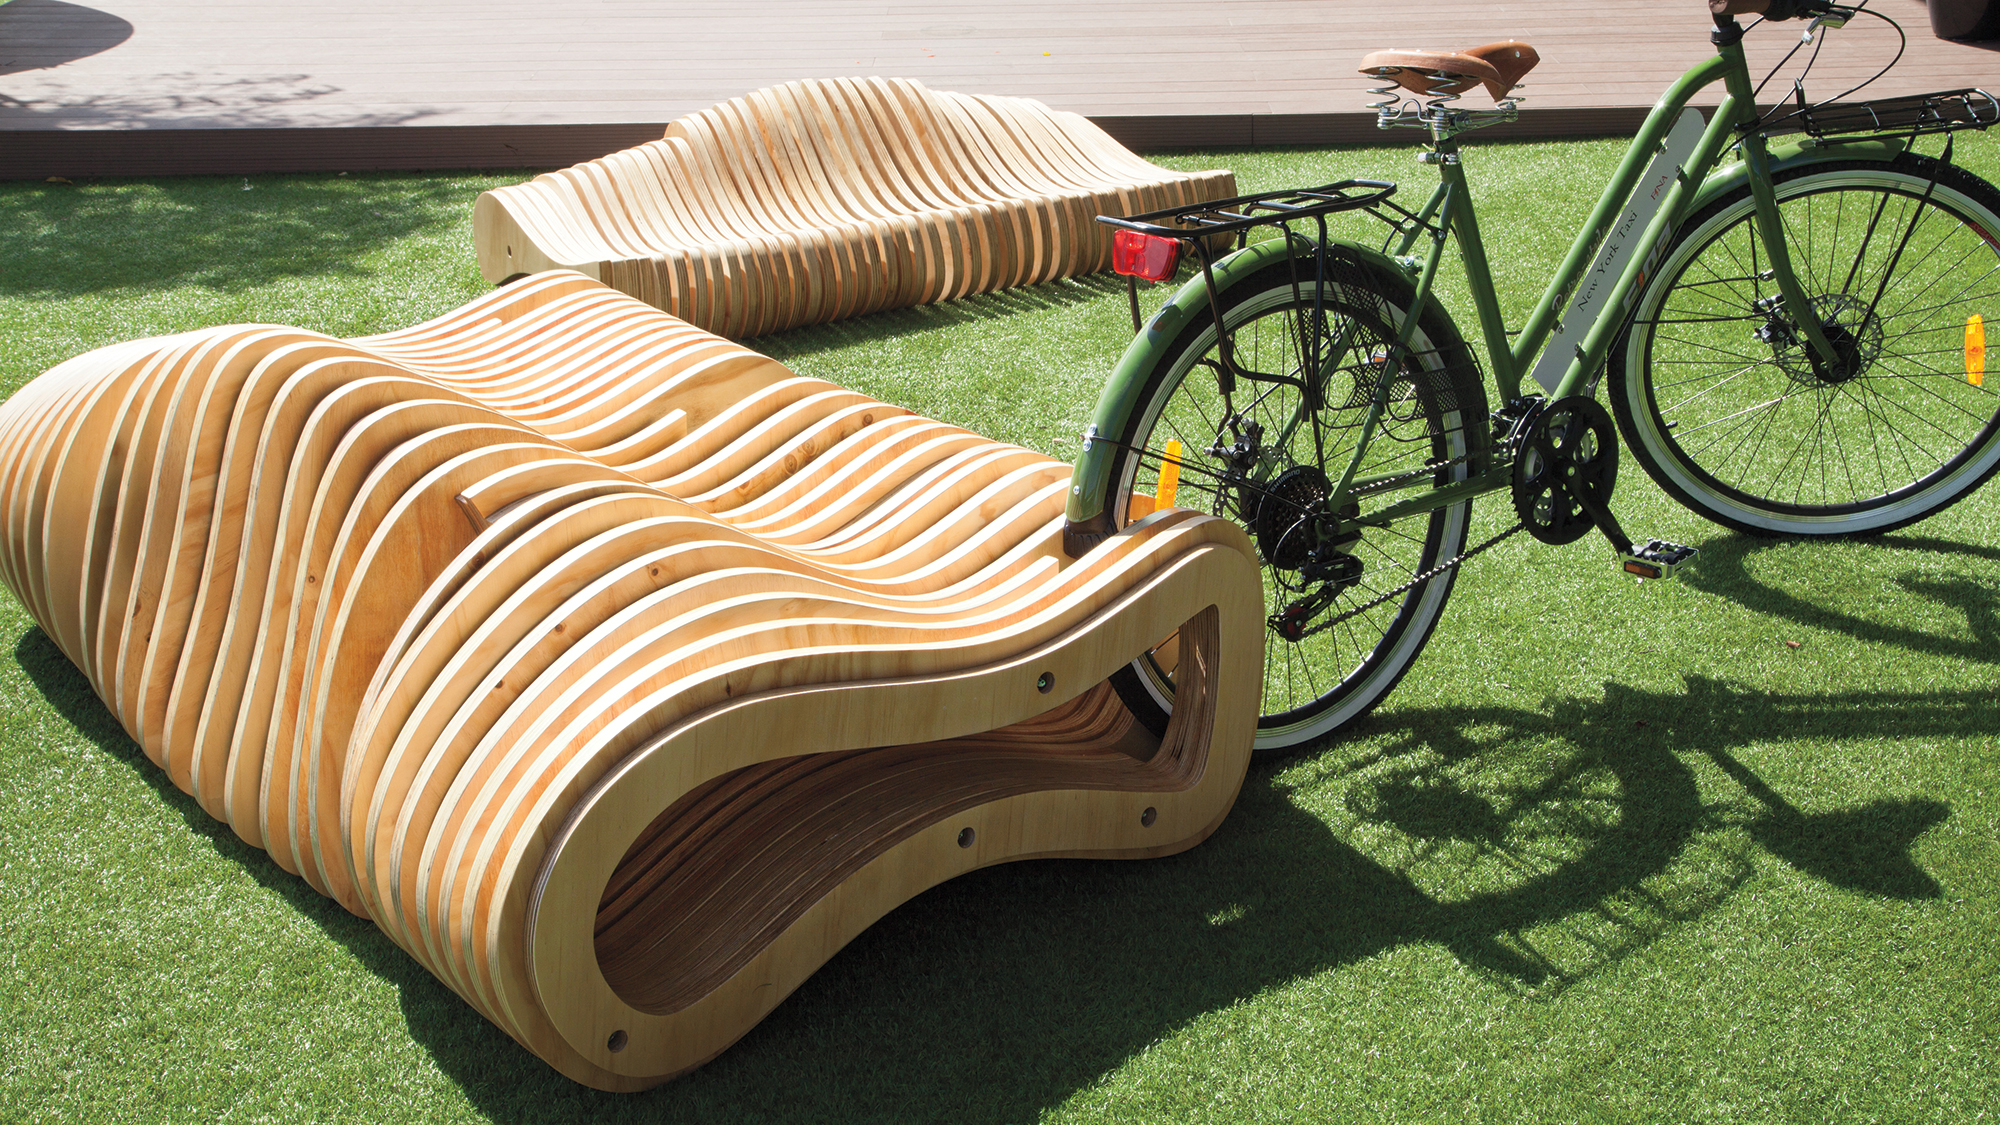 Cnc Milled Plywood Forms Dual Bench And Bike Rack In Costa